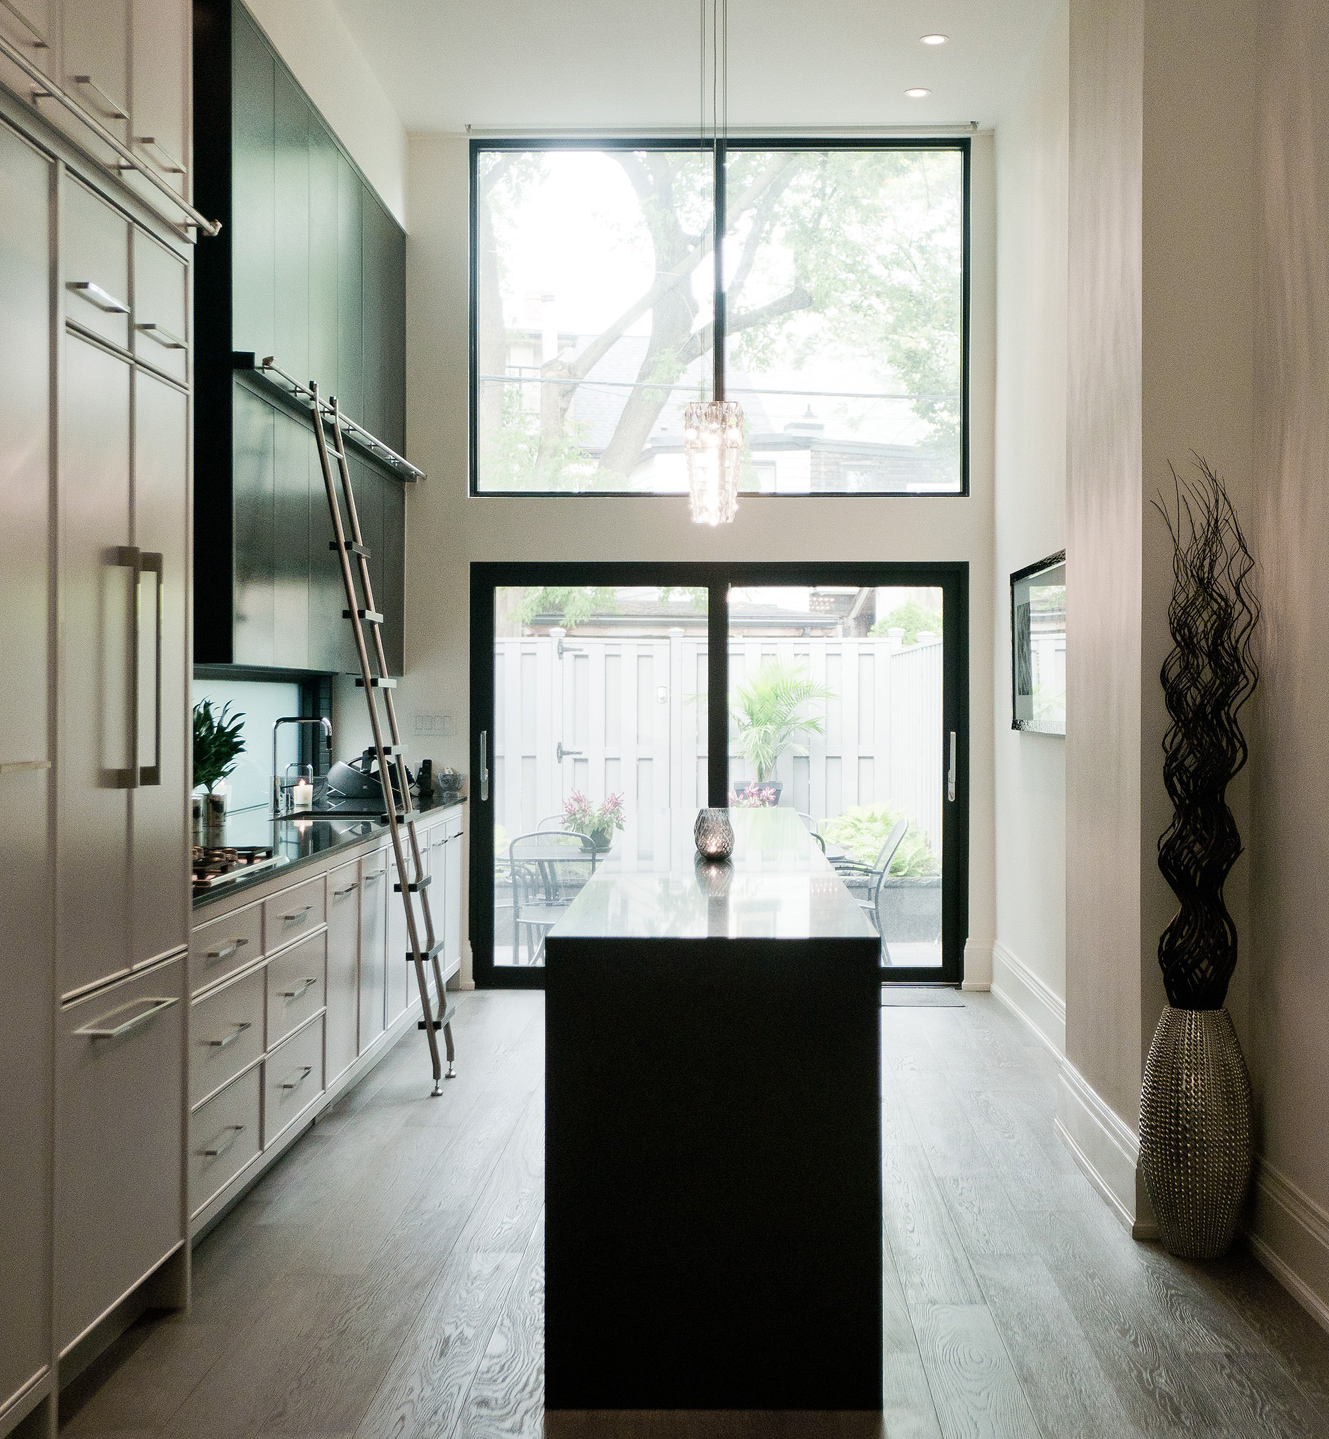 Spectacular Kitchen Family Room Renovation In Leesburg: Toronto Modern Architecture